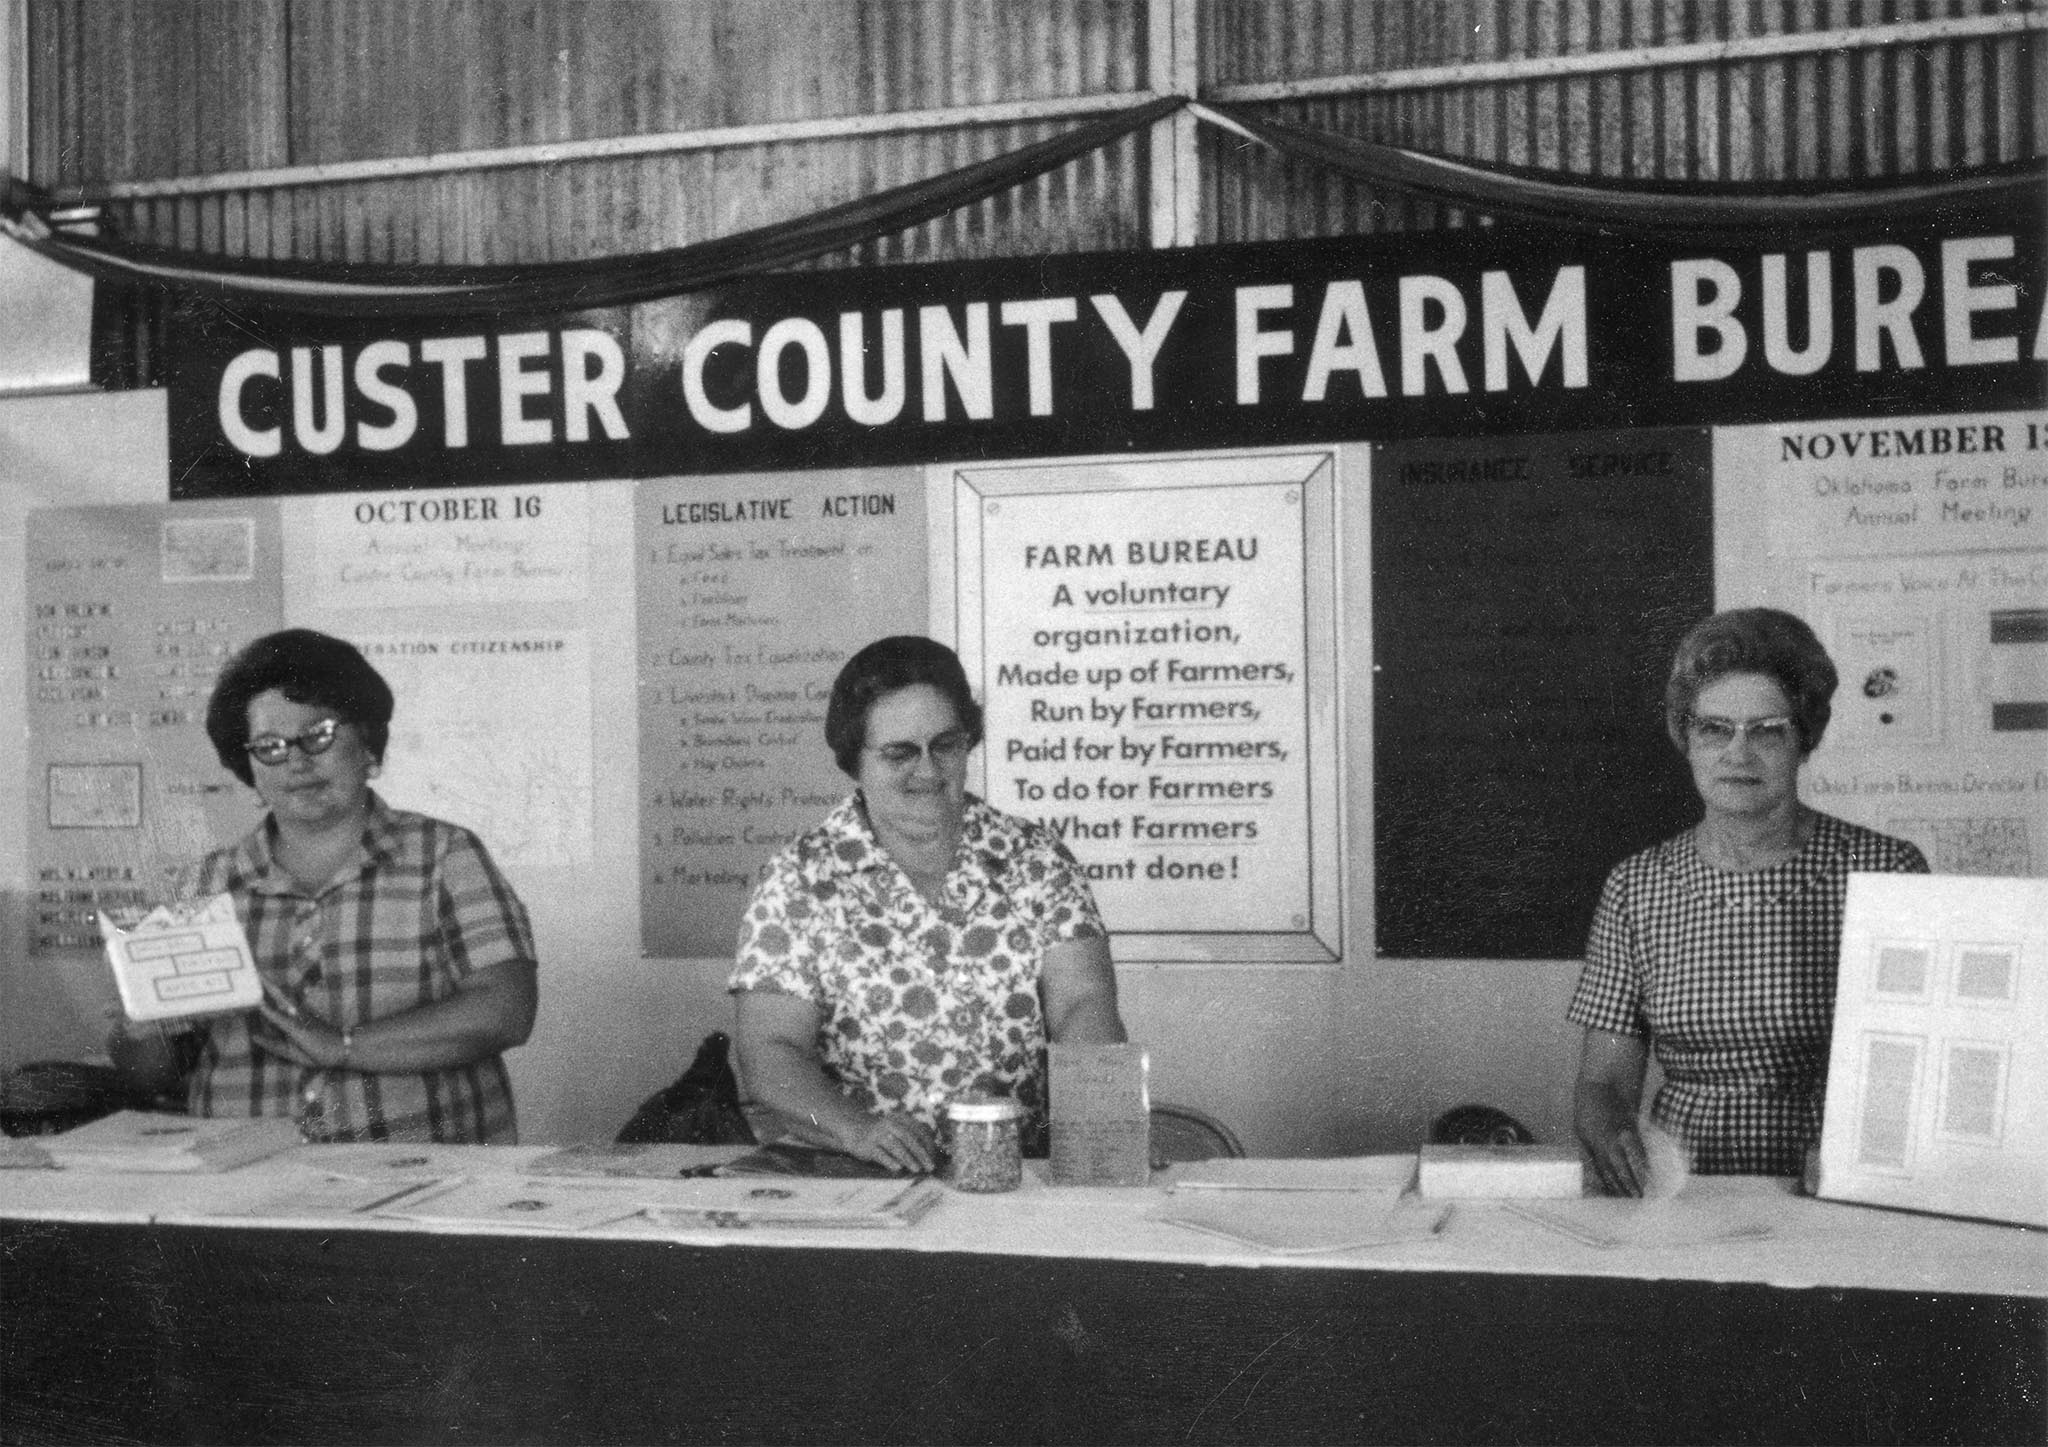 This fair booth was in Custer County in 1967. Tending to the booth are Mrs. Steward Barrick, Mrs. Con Burgtorf and Mrs. Tony Murray, who placed special emphasis on the legislative and policy development programs of Farm Bureau and information aids used to keep members informed.